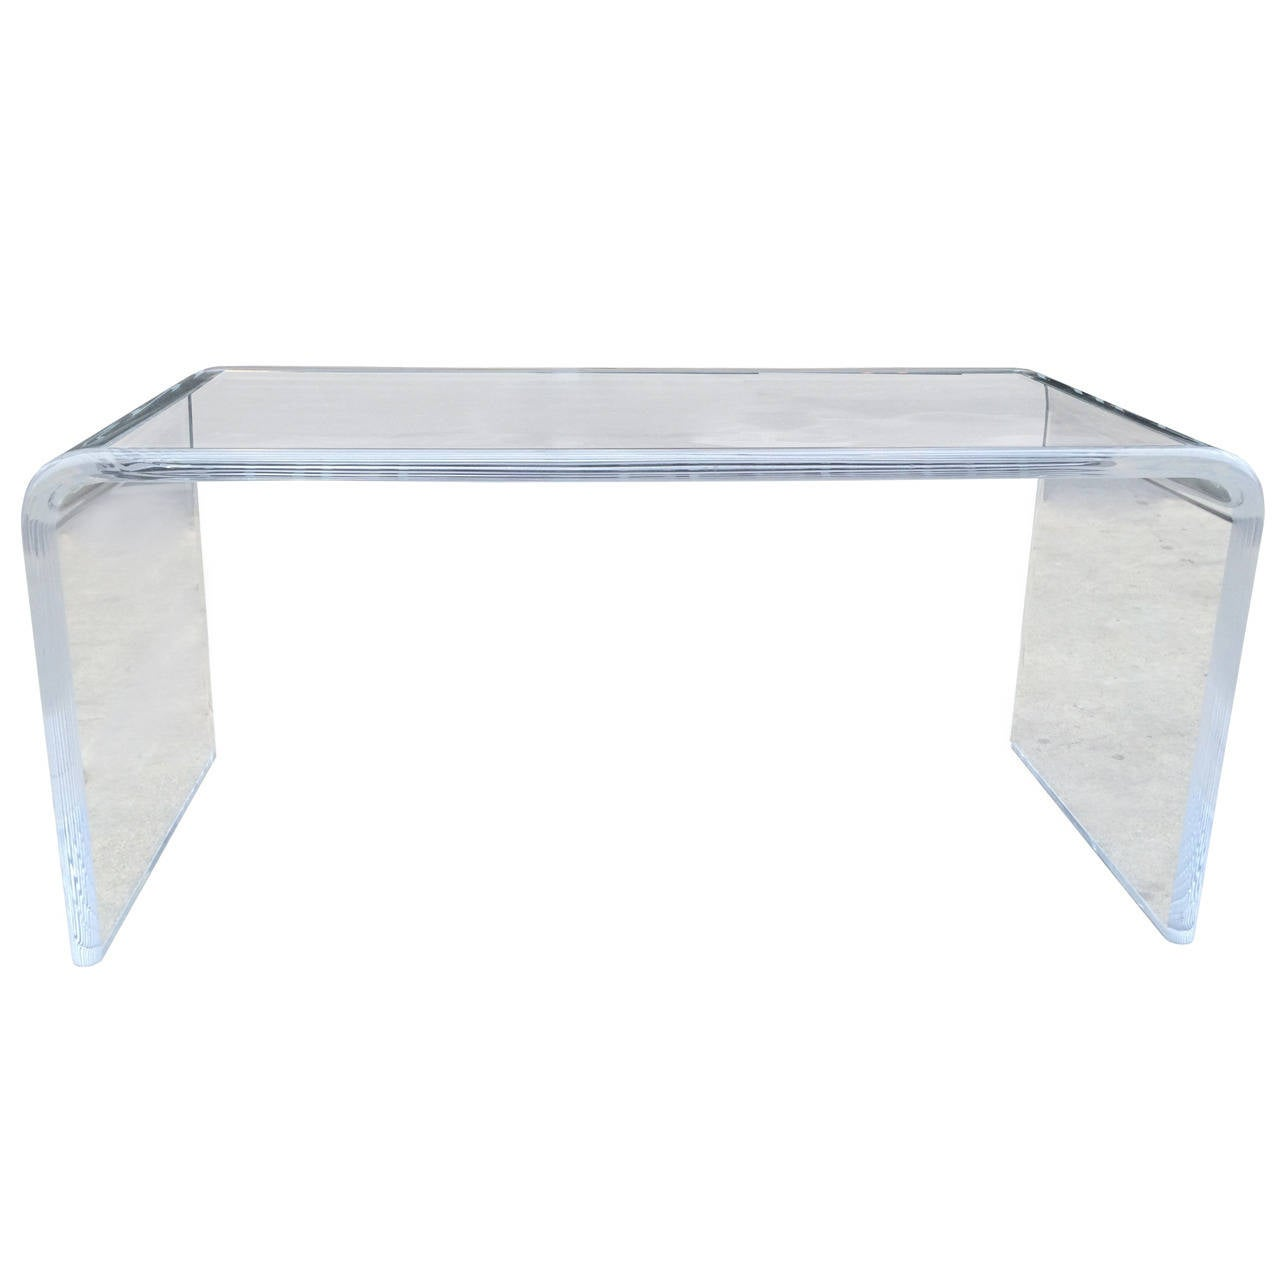 Lucite Waterfall Coffee Table with Bullnose Edges by Charles